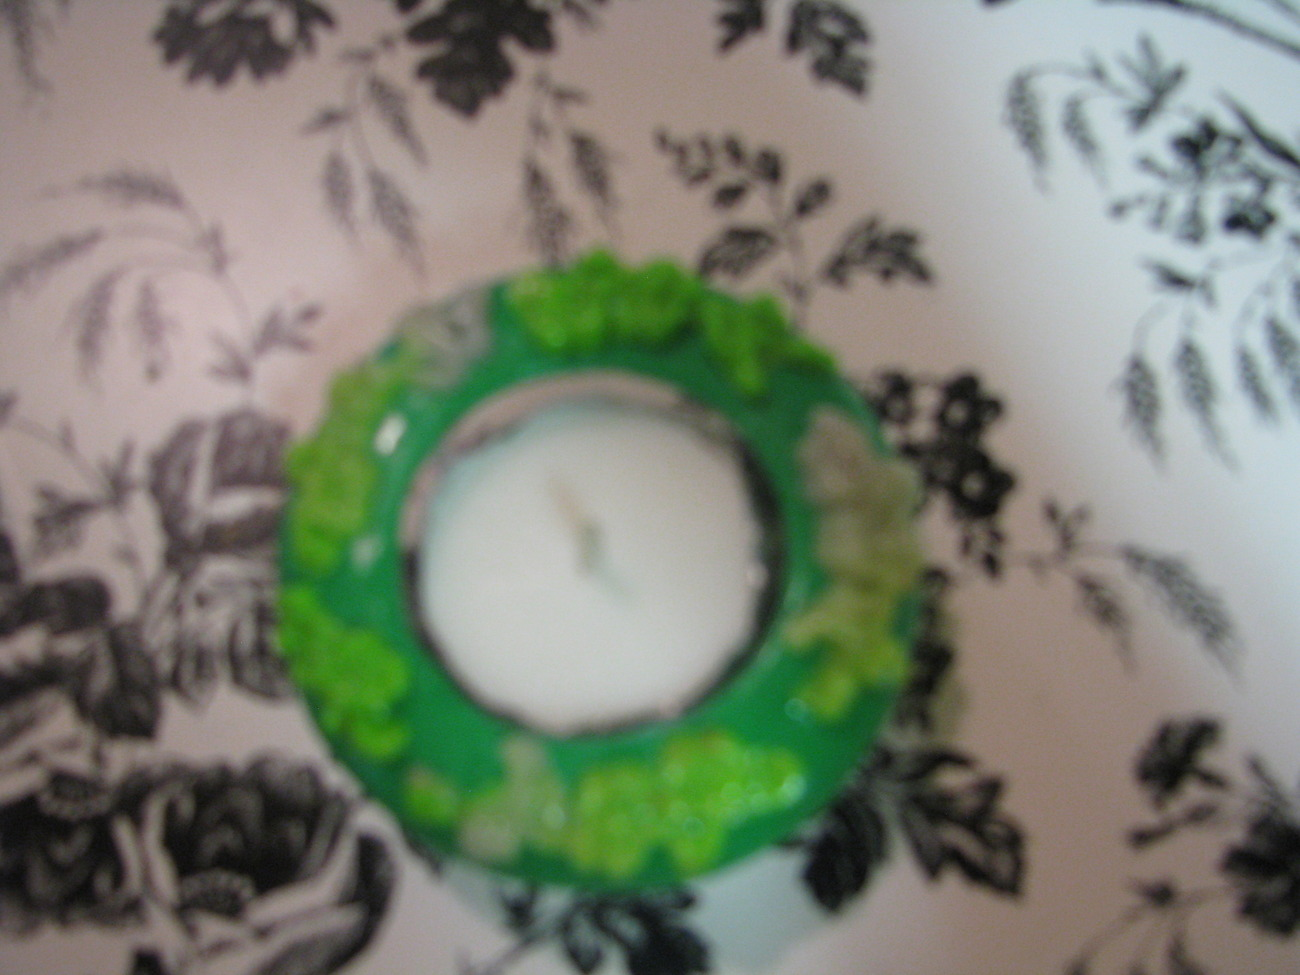 Green and Translucent Polymer Clay Tealite Candle Holder